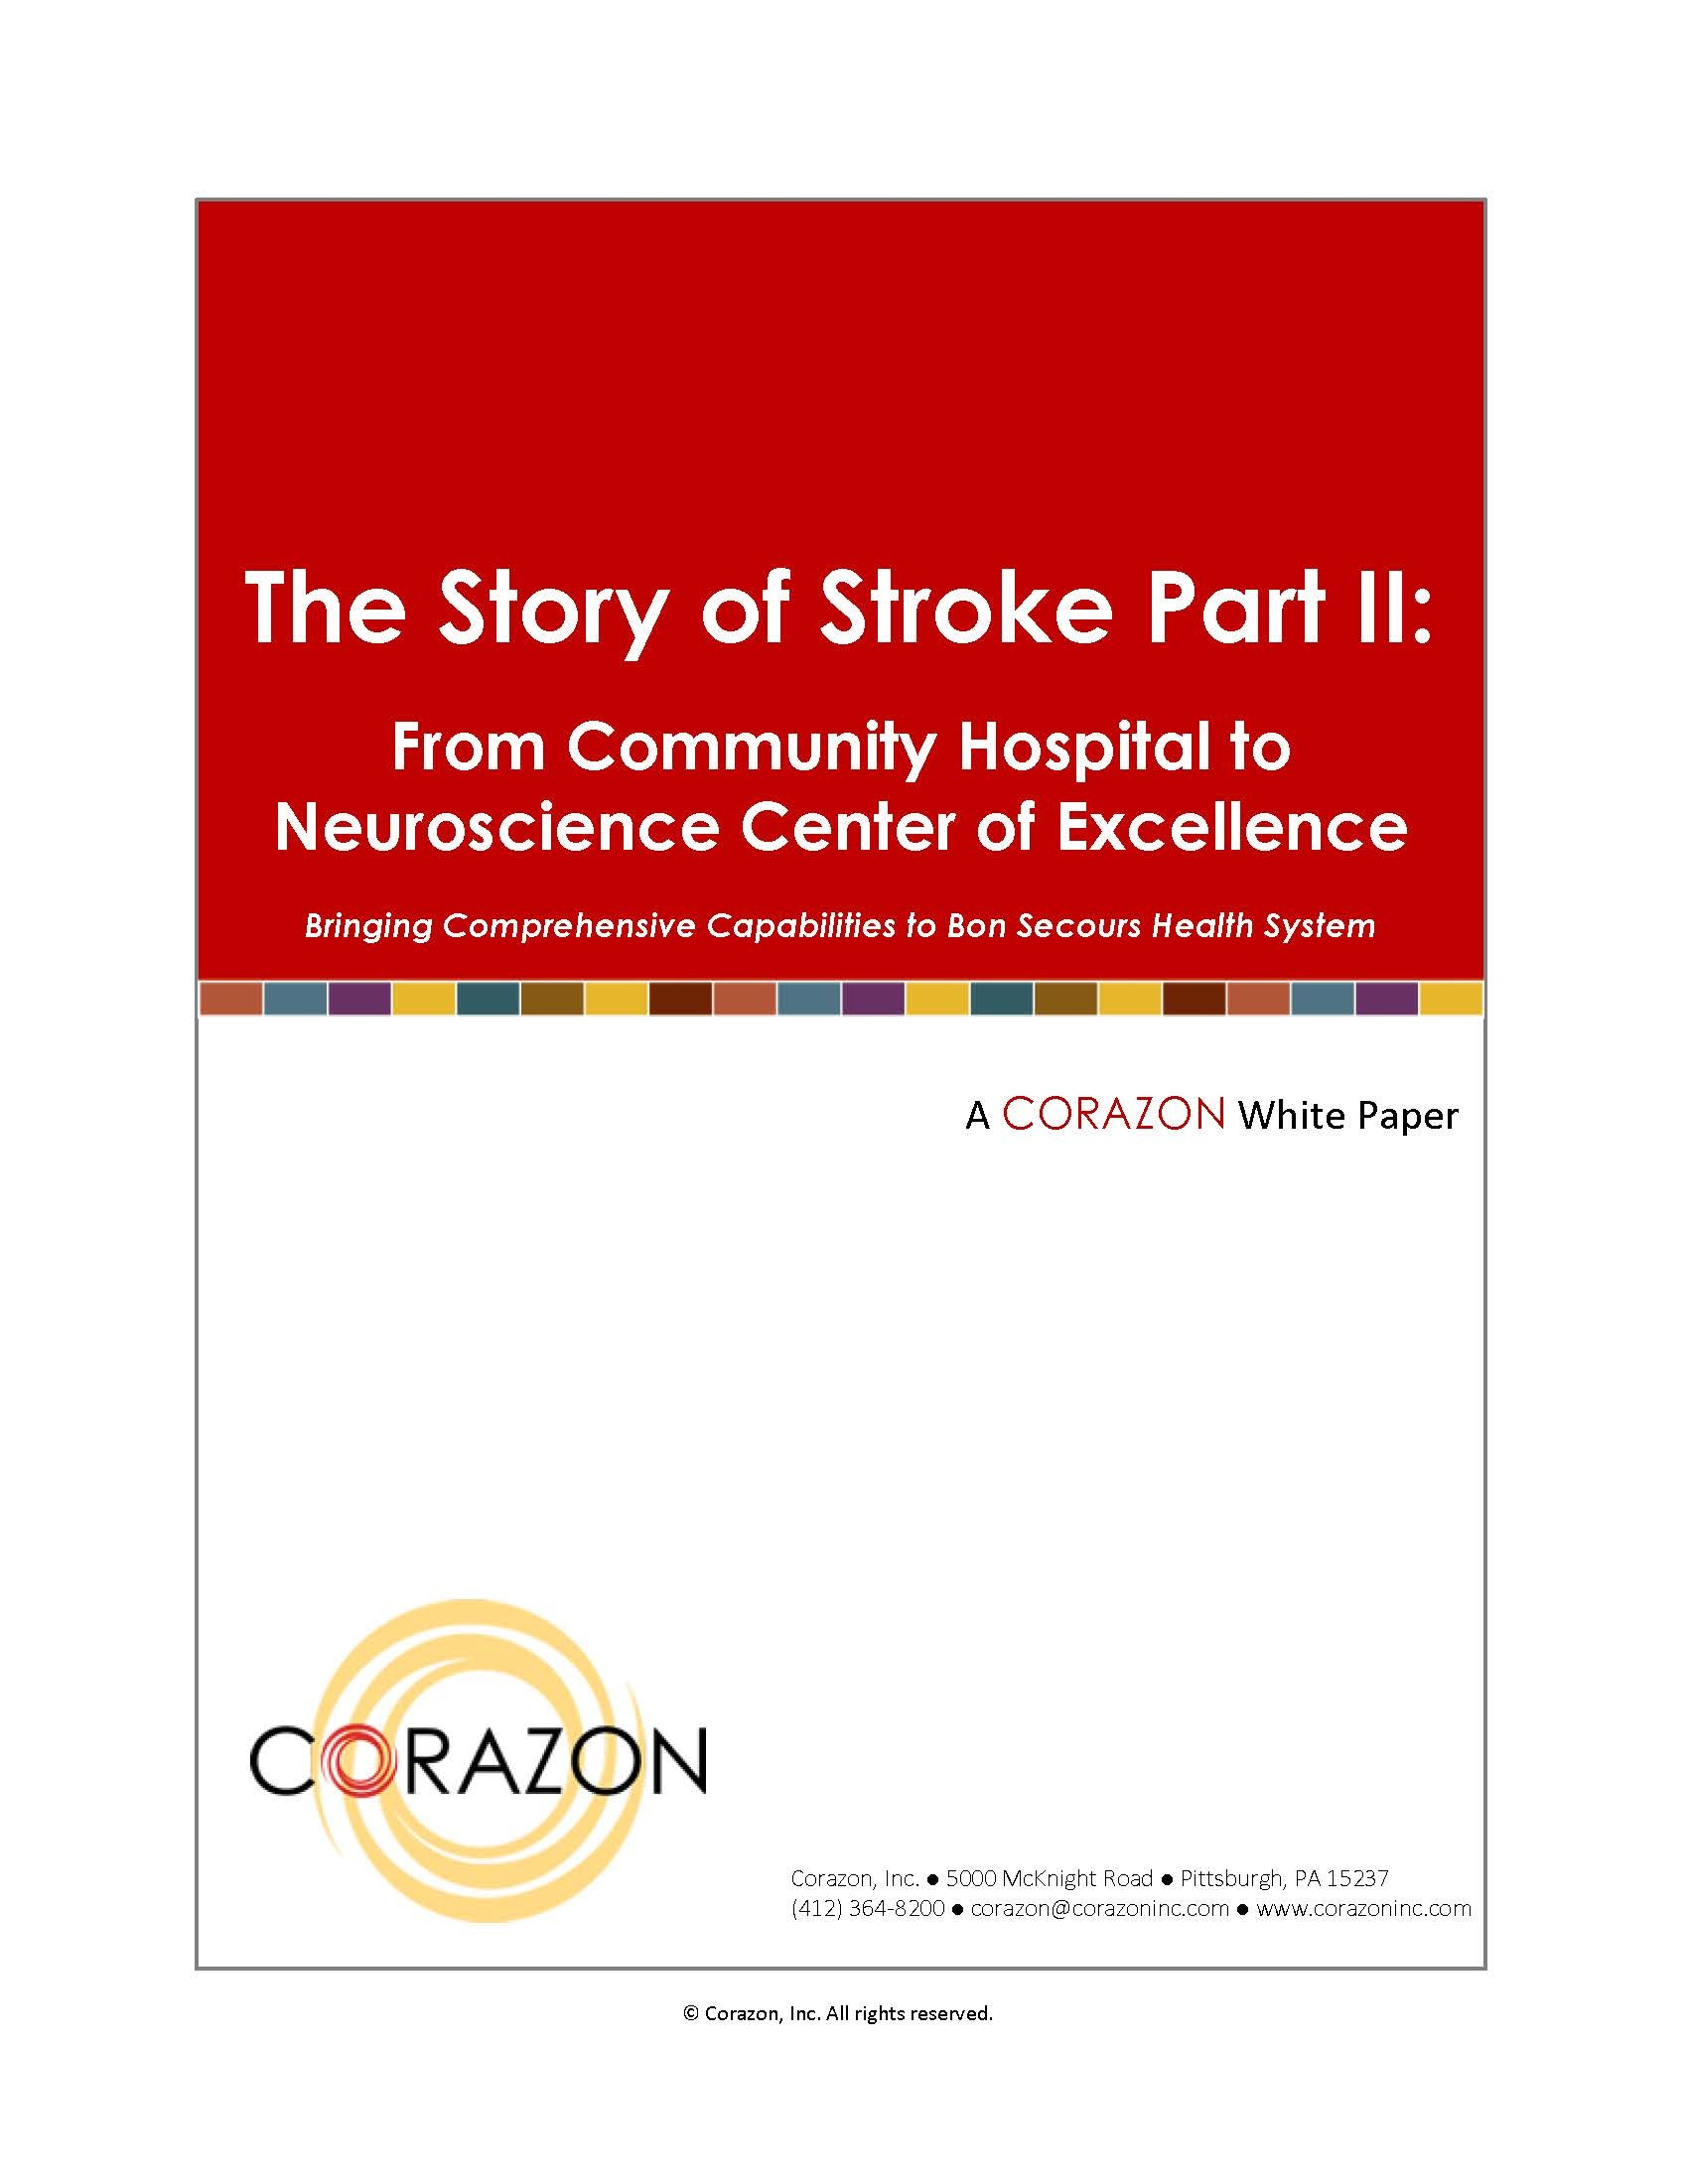 The Story of Stroke Part II: From Community Hospital to Neuroscience Center of Excellence 00019